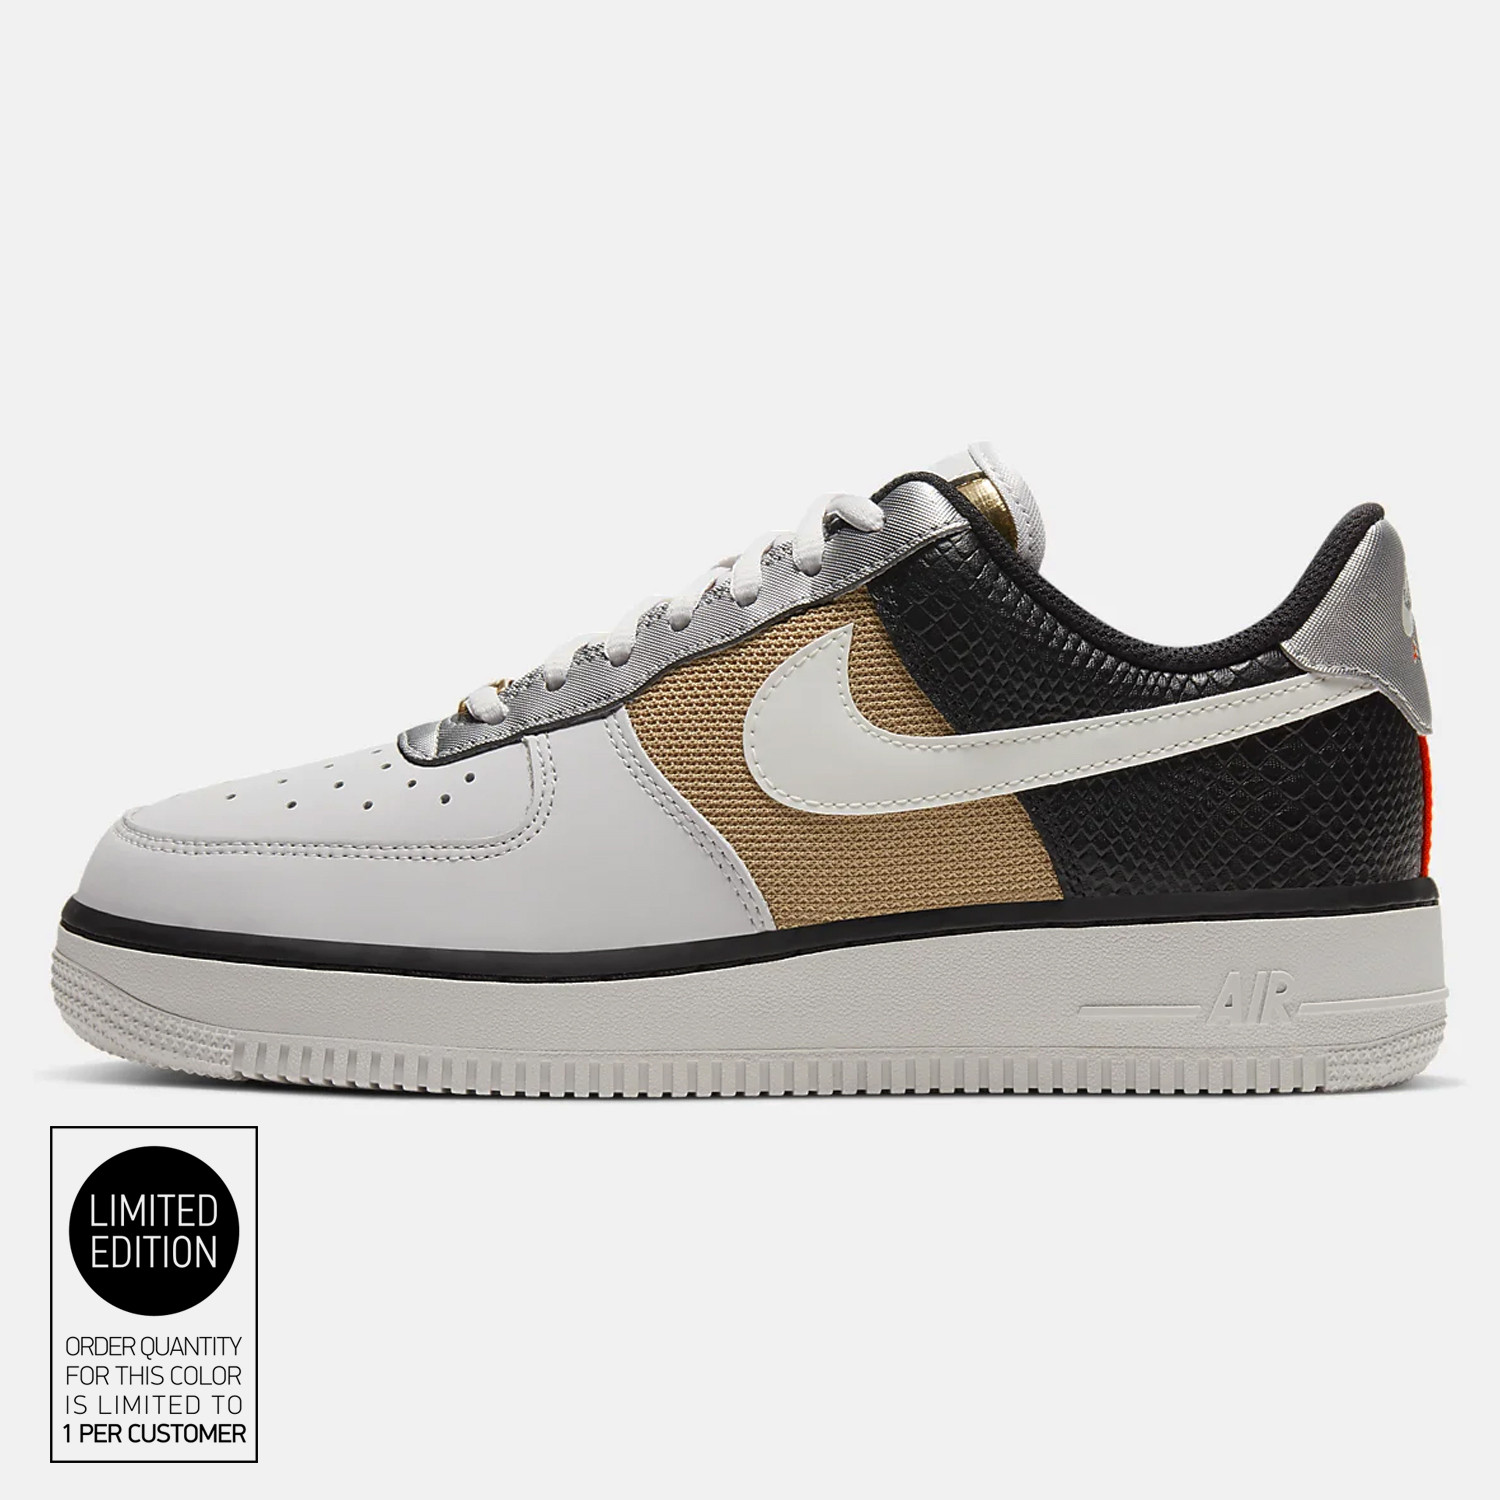 Nike Air Force 1 07 Women S Shoes Vast Grey Sail Black Metallic Gold Ct3434 001 Constructed with black leather and suede throughout while clay hits the swoosh and pink underlays. nike air force 1 07 women s shoes